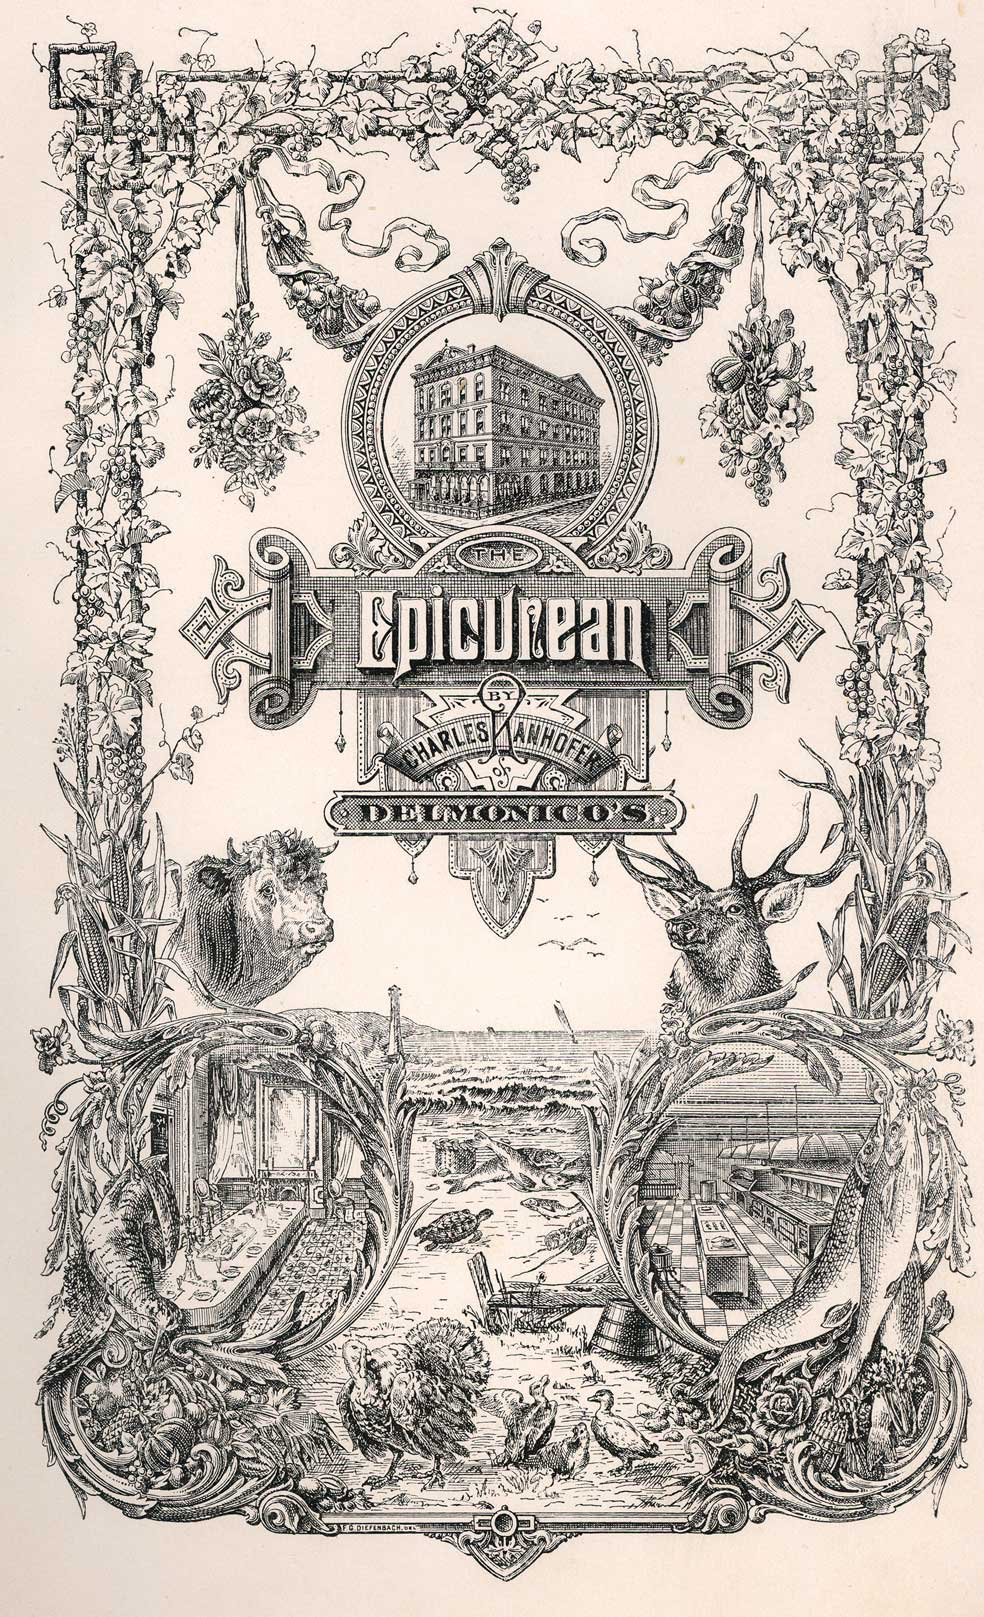 The epicurean : a complete treatise of analytical and practical studies on the culinary art, including table and wine service, how to prepare and cook dishes... etc., and a selection of interesting bills of fare of Delmonico's from 1862 to 1894. Making...